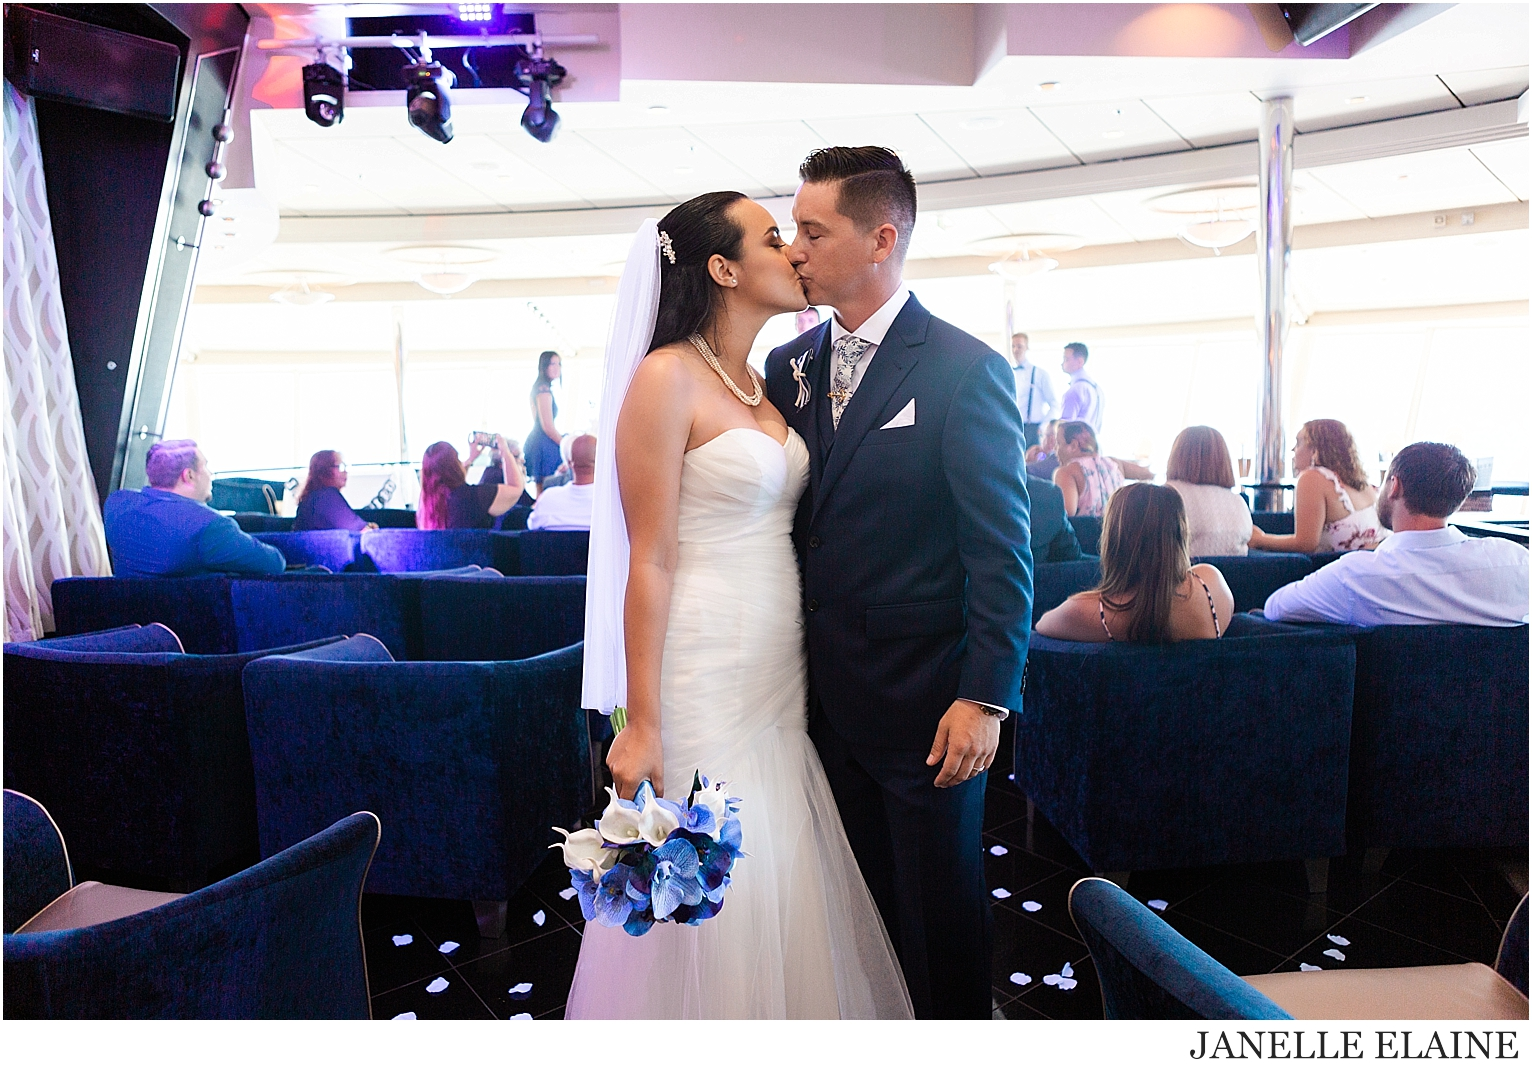 white wedding-royal caribbean-janelle elaine photography-389.jpg